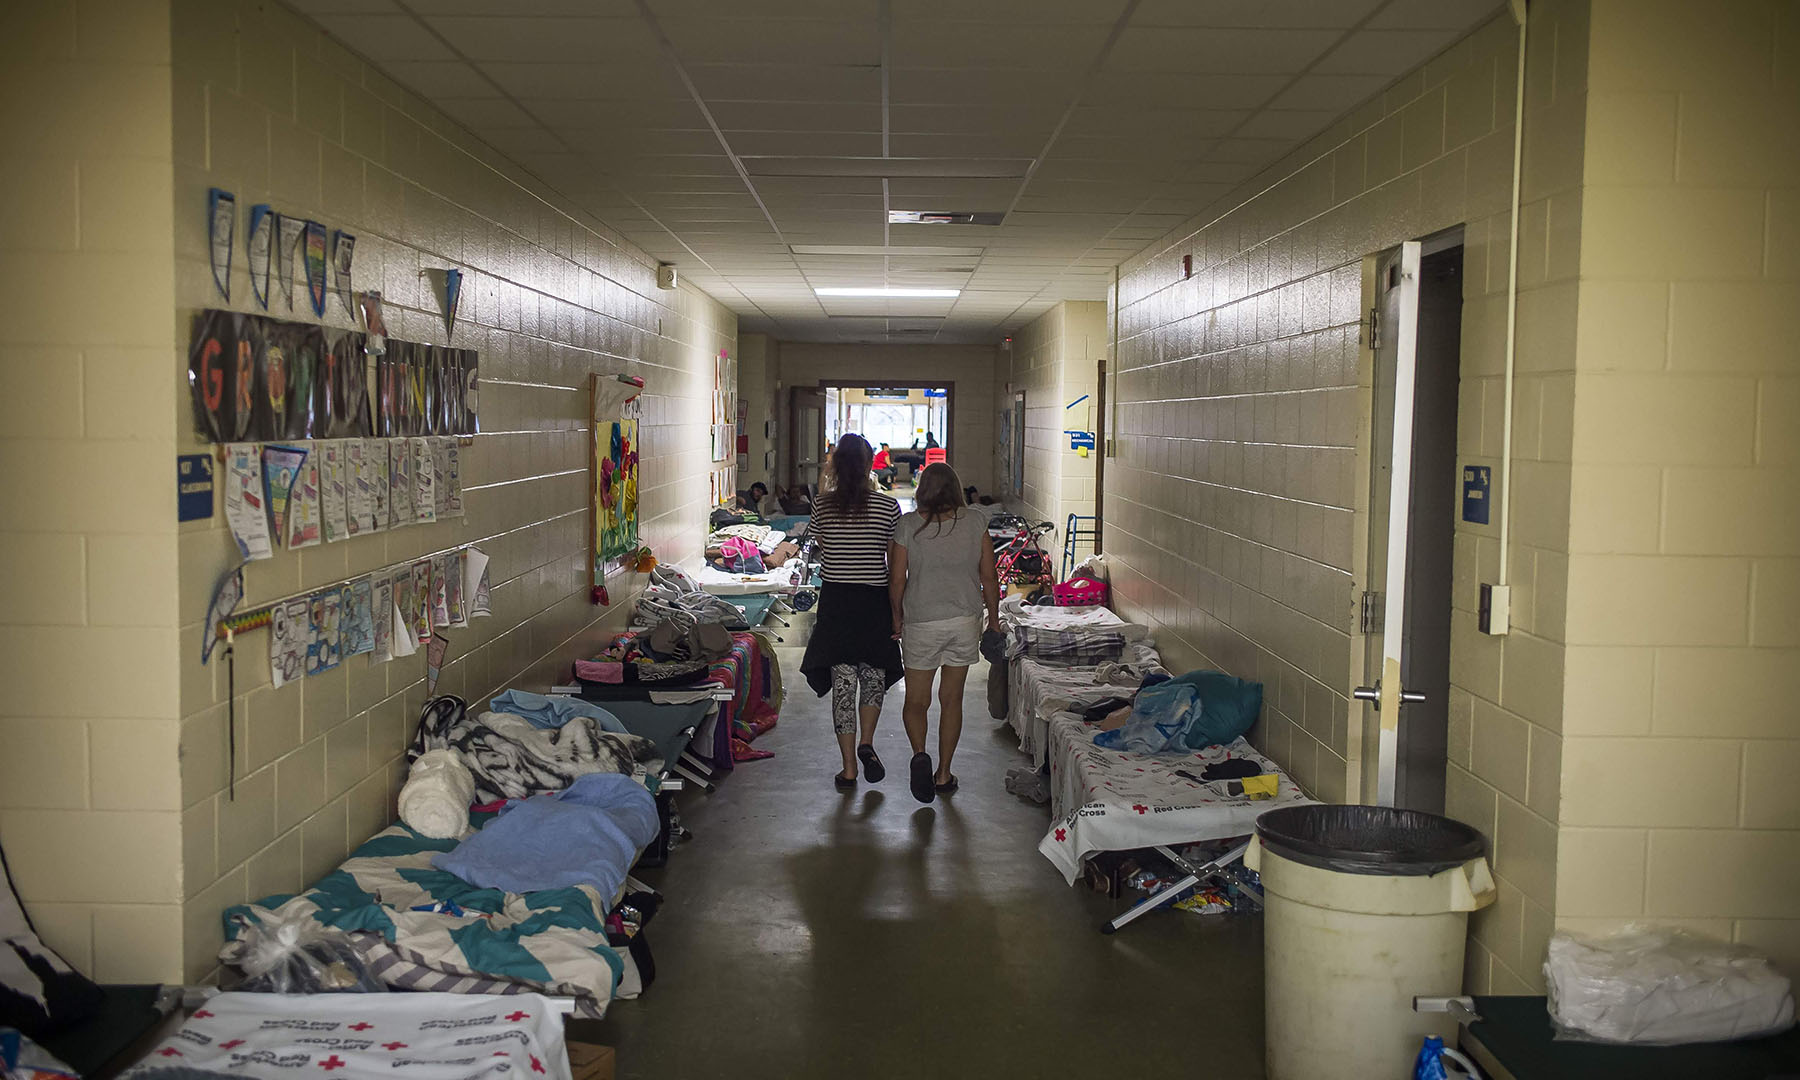 Evacuees walk the halls of a hurricane shelter in Panama City, Florida, in October, 2018, during Hurricane Michael. When people evacuate, they often forget medicines needed to manage chronic conditions, which can escalate into medical crisis. (Photo by Zack Wittman for Direct Relief)